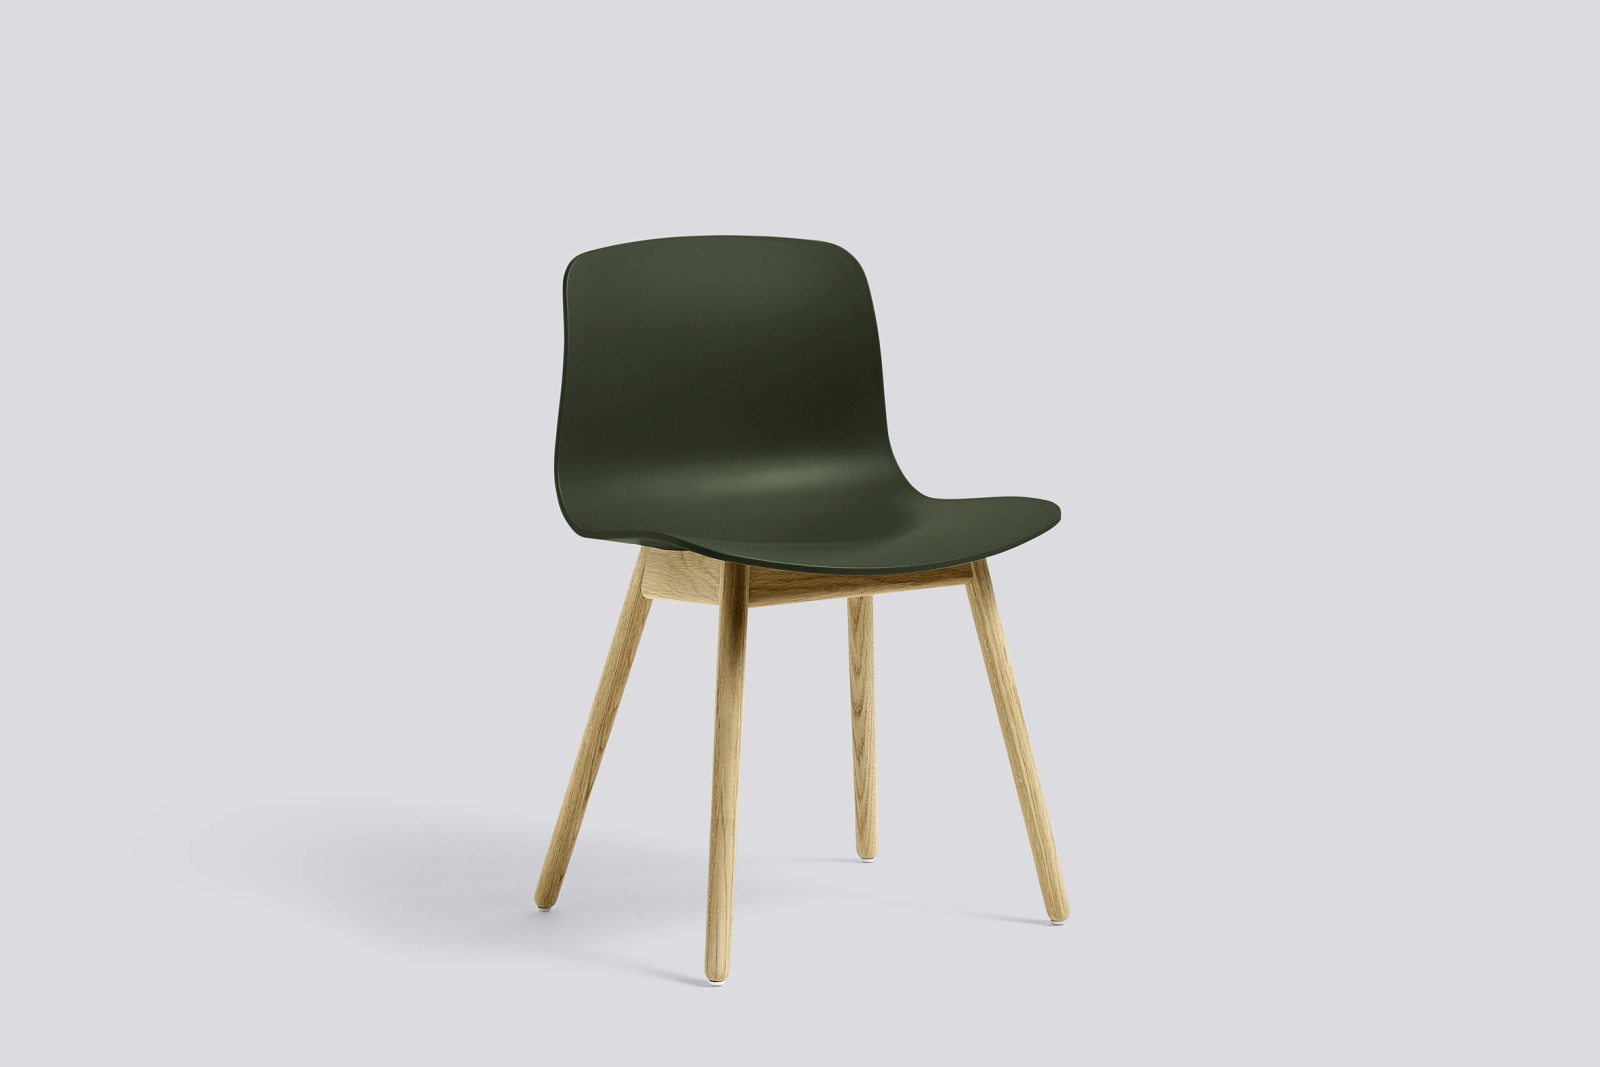 About A Chair AAC12 Green Seat and Matt Lacquered Solid Oak